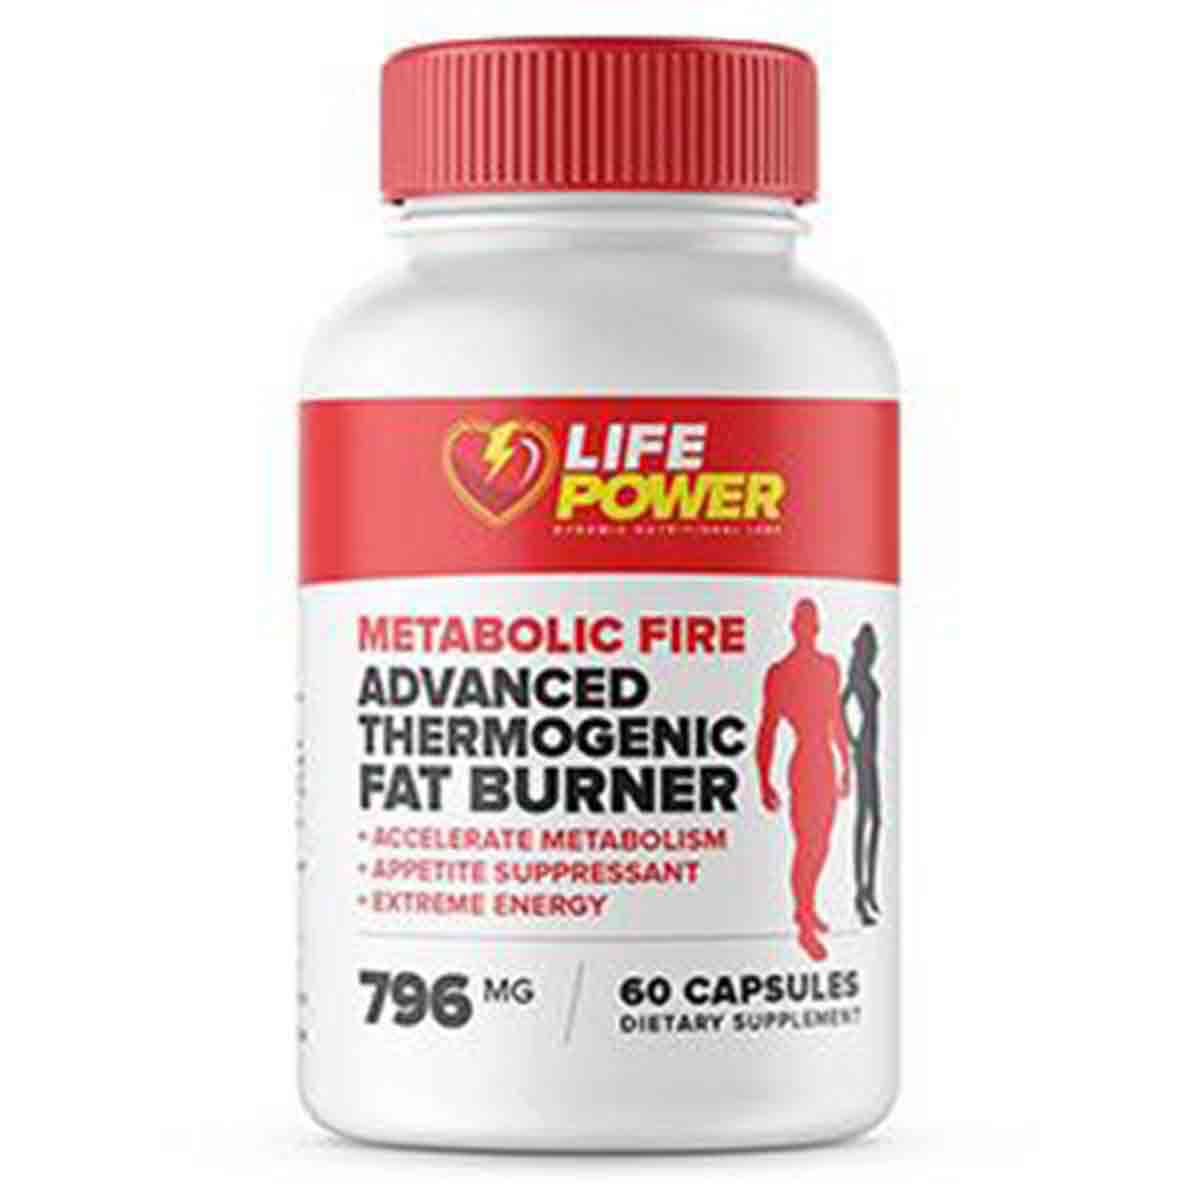 LifePower Labs Metabolic Fire